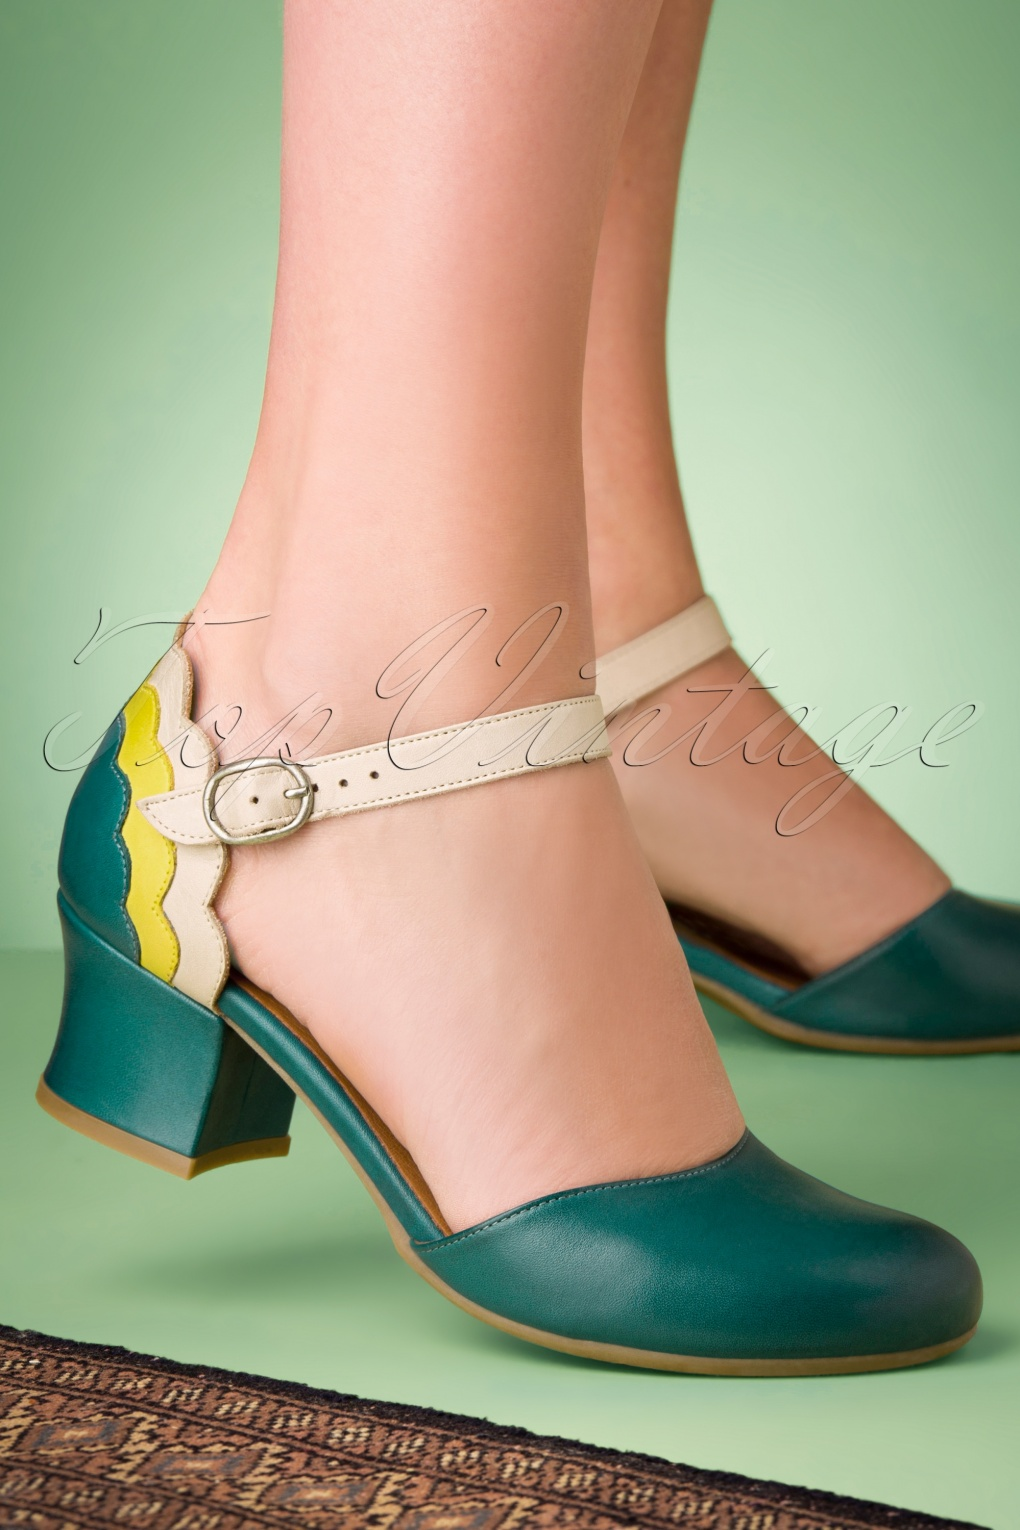 60s Fancy Dress and Quality Clothing 1960s UK 60s Flaunt Leather Pumps in Turquoise £19.95 AT vintagedancer.com